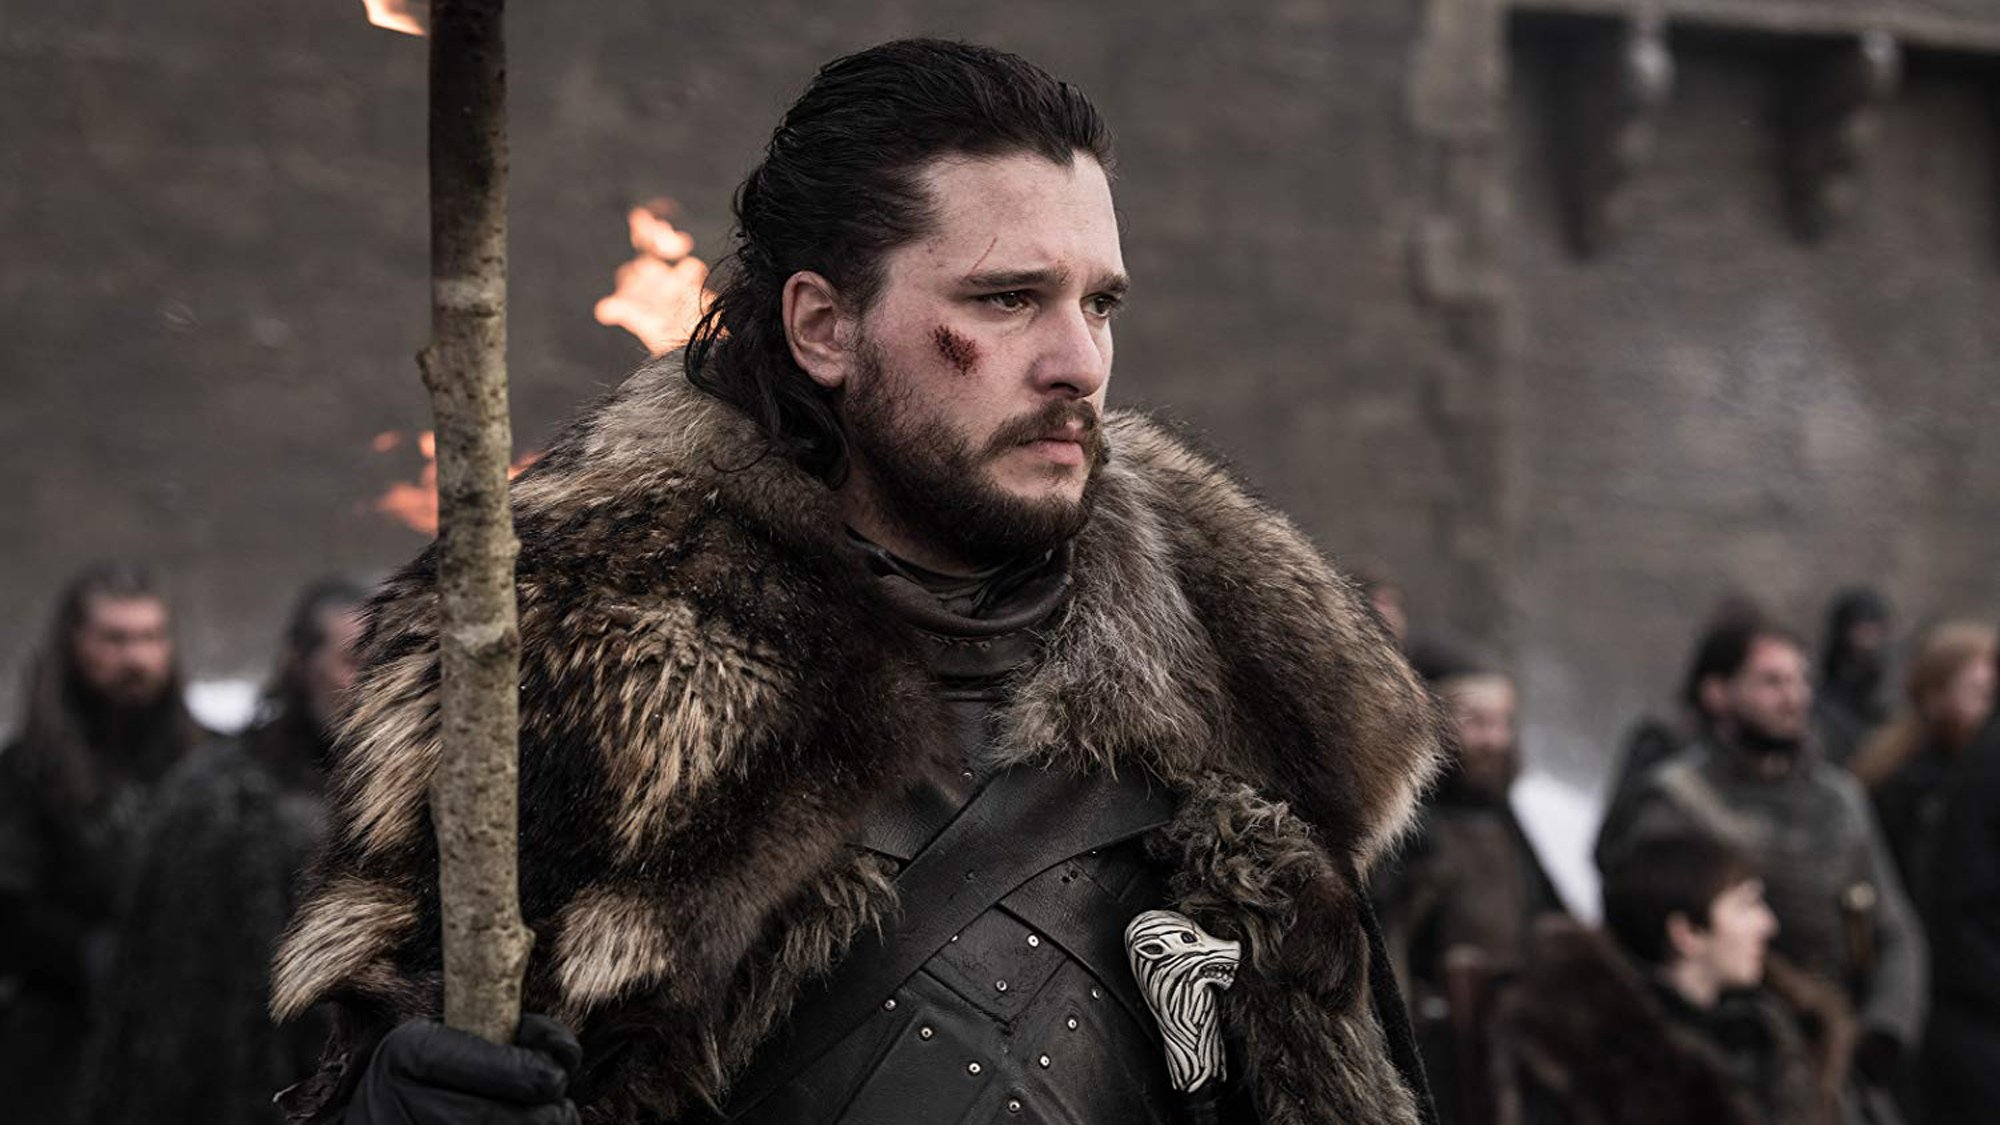 game of thrones season 8, episode 6 - photo #10